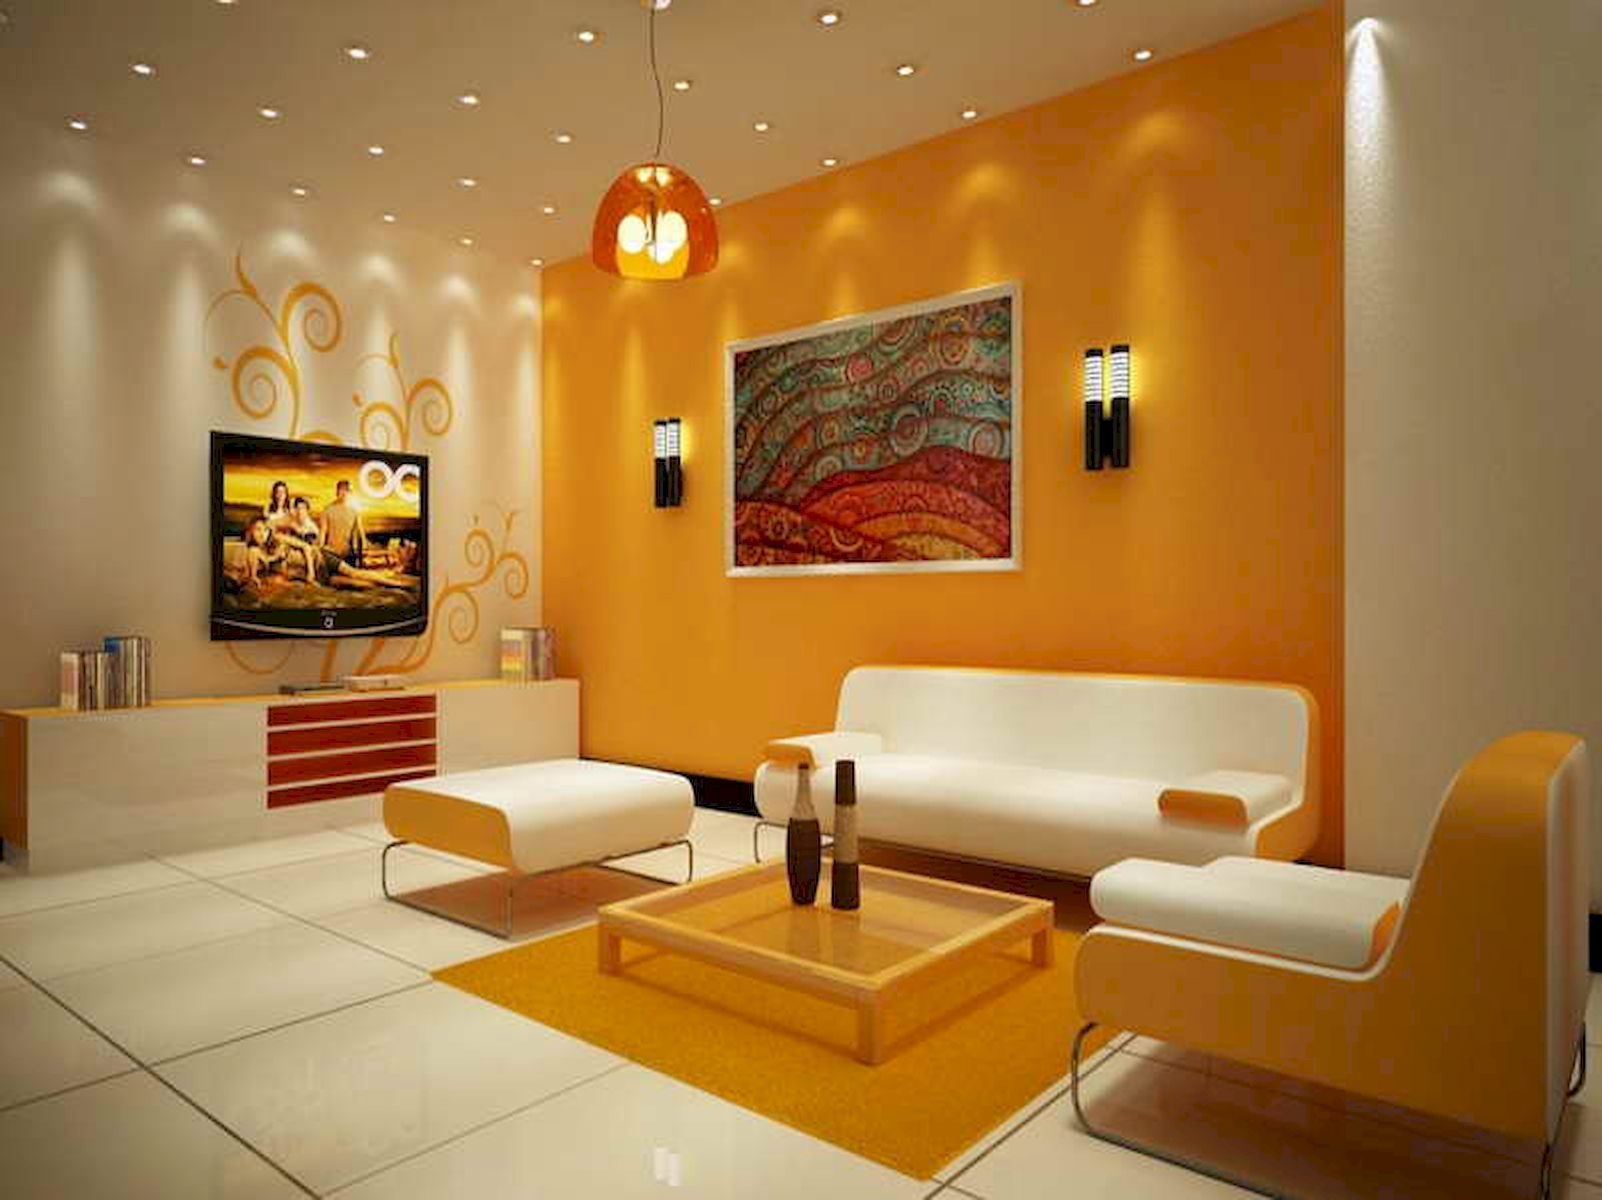 Cool 40 Awesome Wall Painting Ideas For Home Https Coachdecor